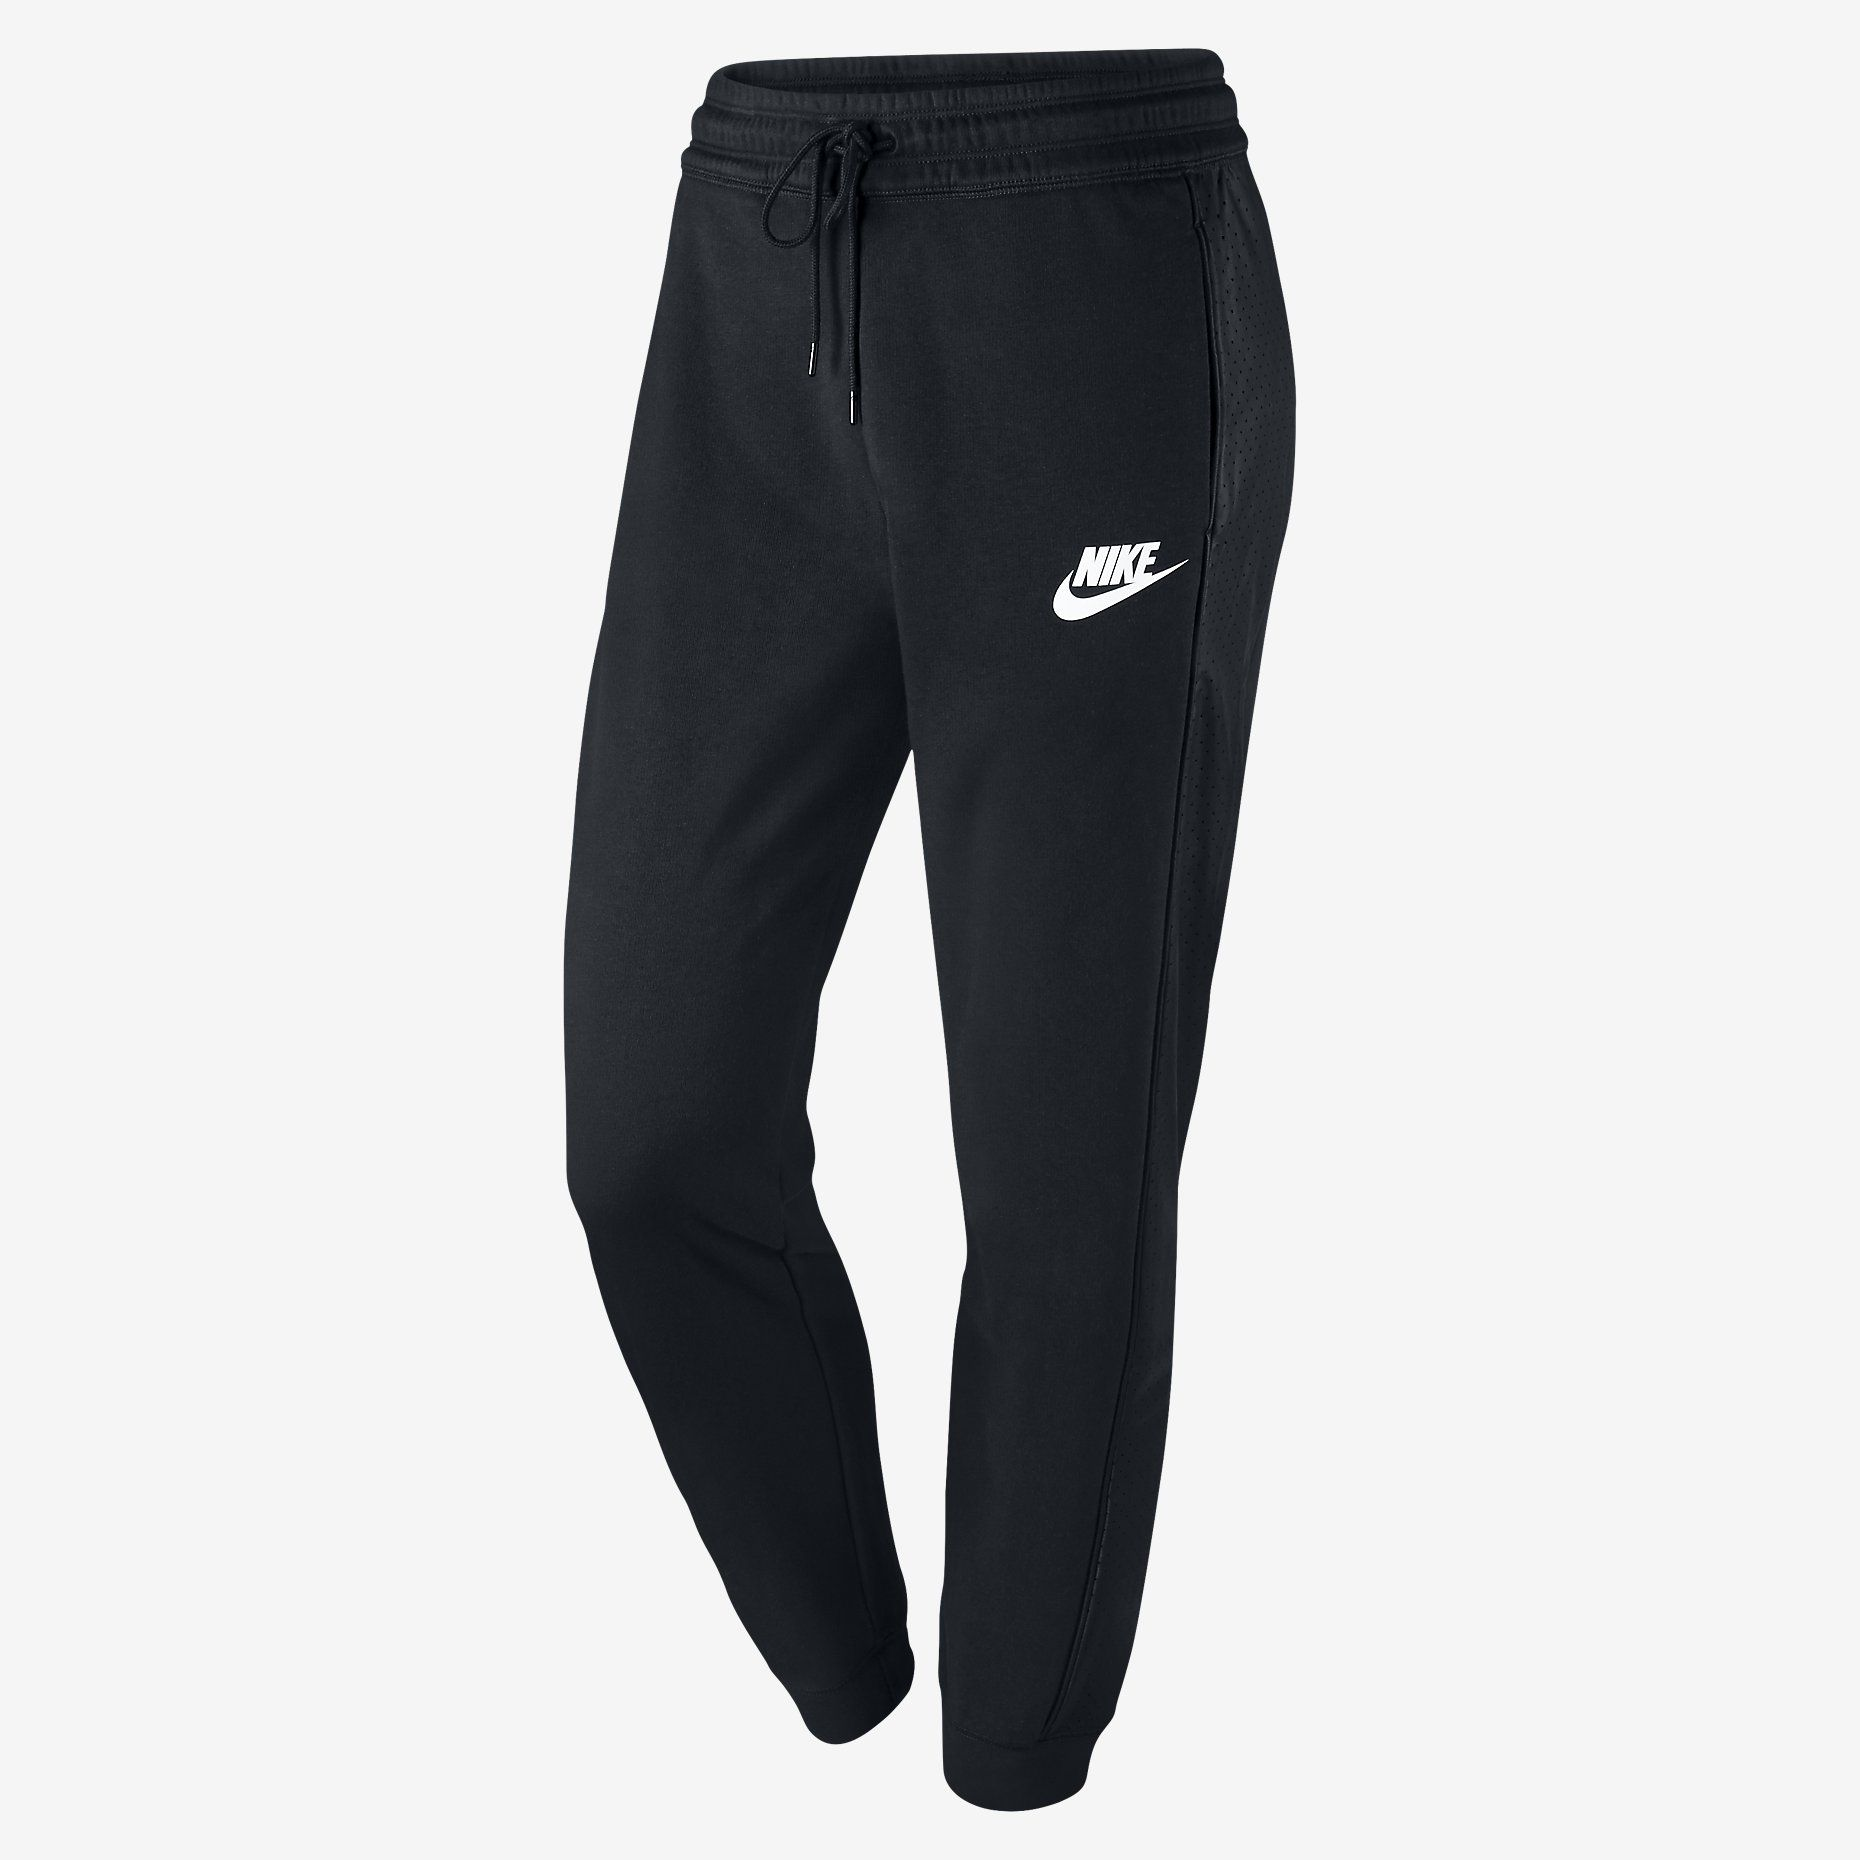 Nike Perforated Jogger Women's Pants.